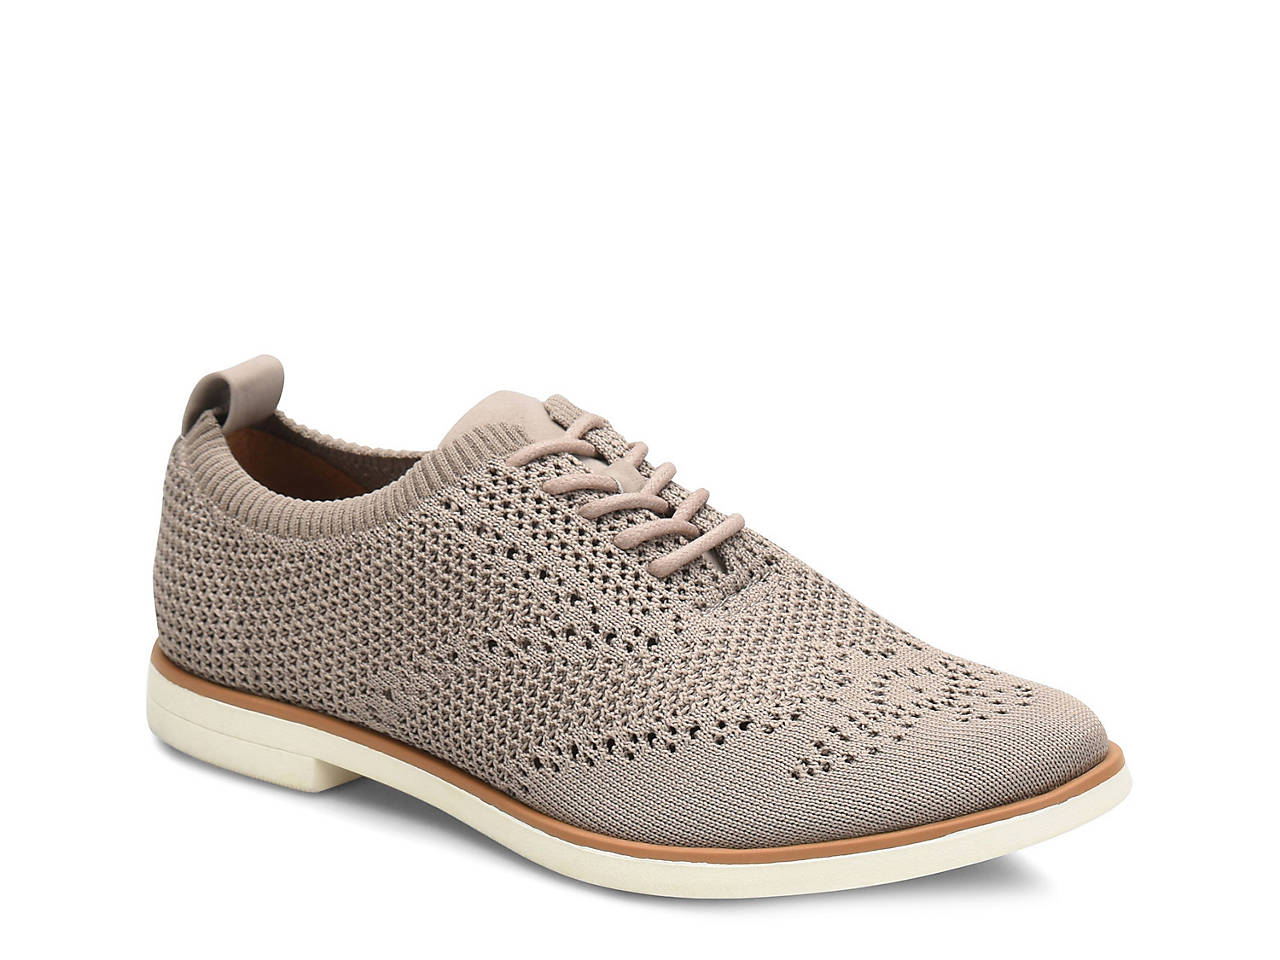 57c007c66308 Eurosoft Virida Oxford Women s Shoes